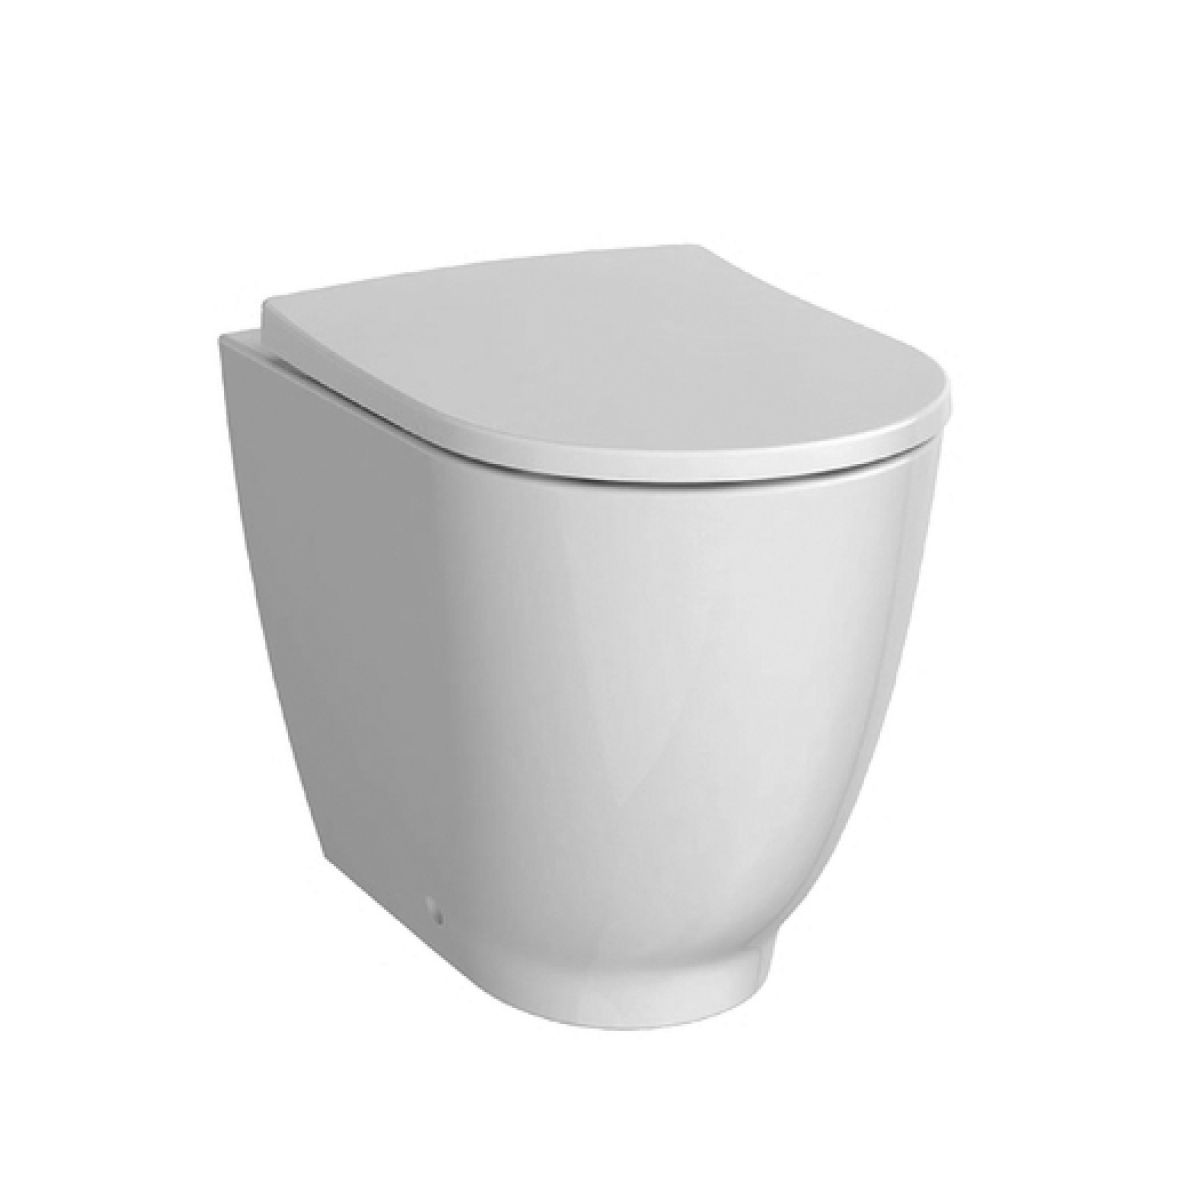 Geberit Acanto Back To Wall Toilet Rimfree